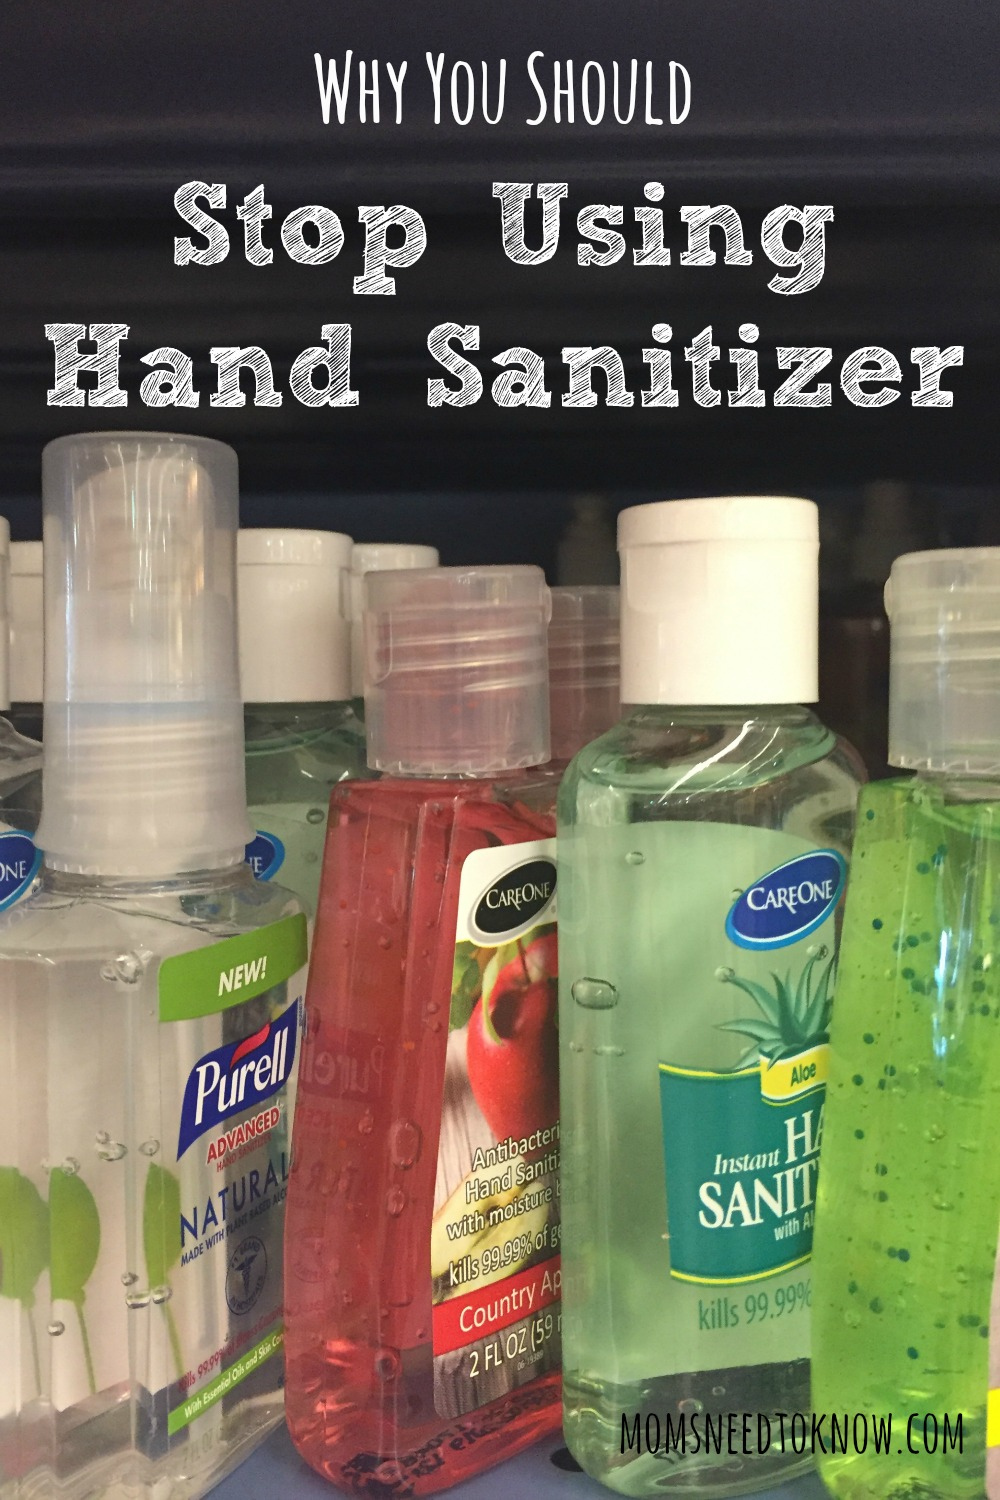 When we try to eradicate germs from our life, we may be doing more harm than good. I don't use hand sanitizer - here is why you shouldn't either